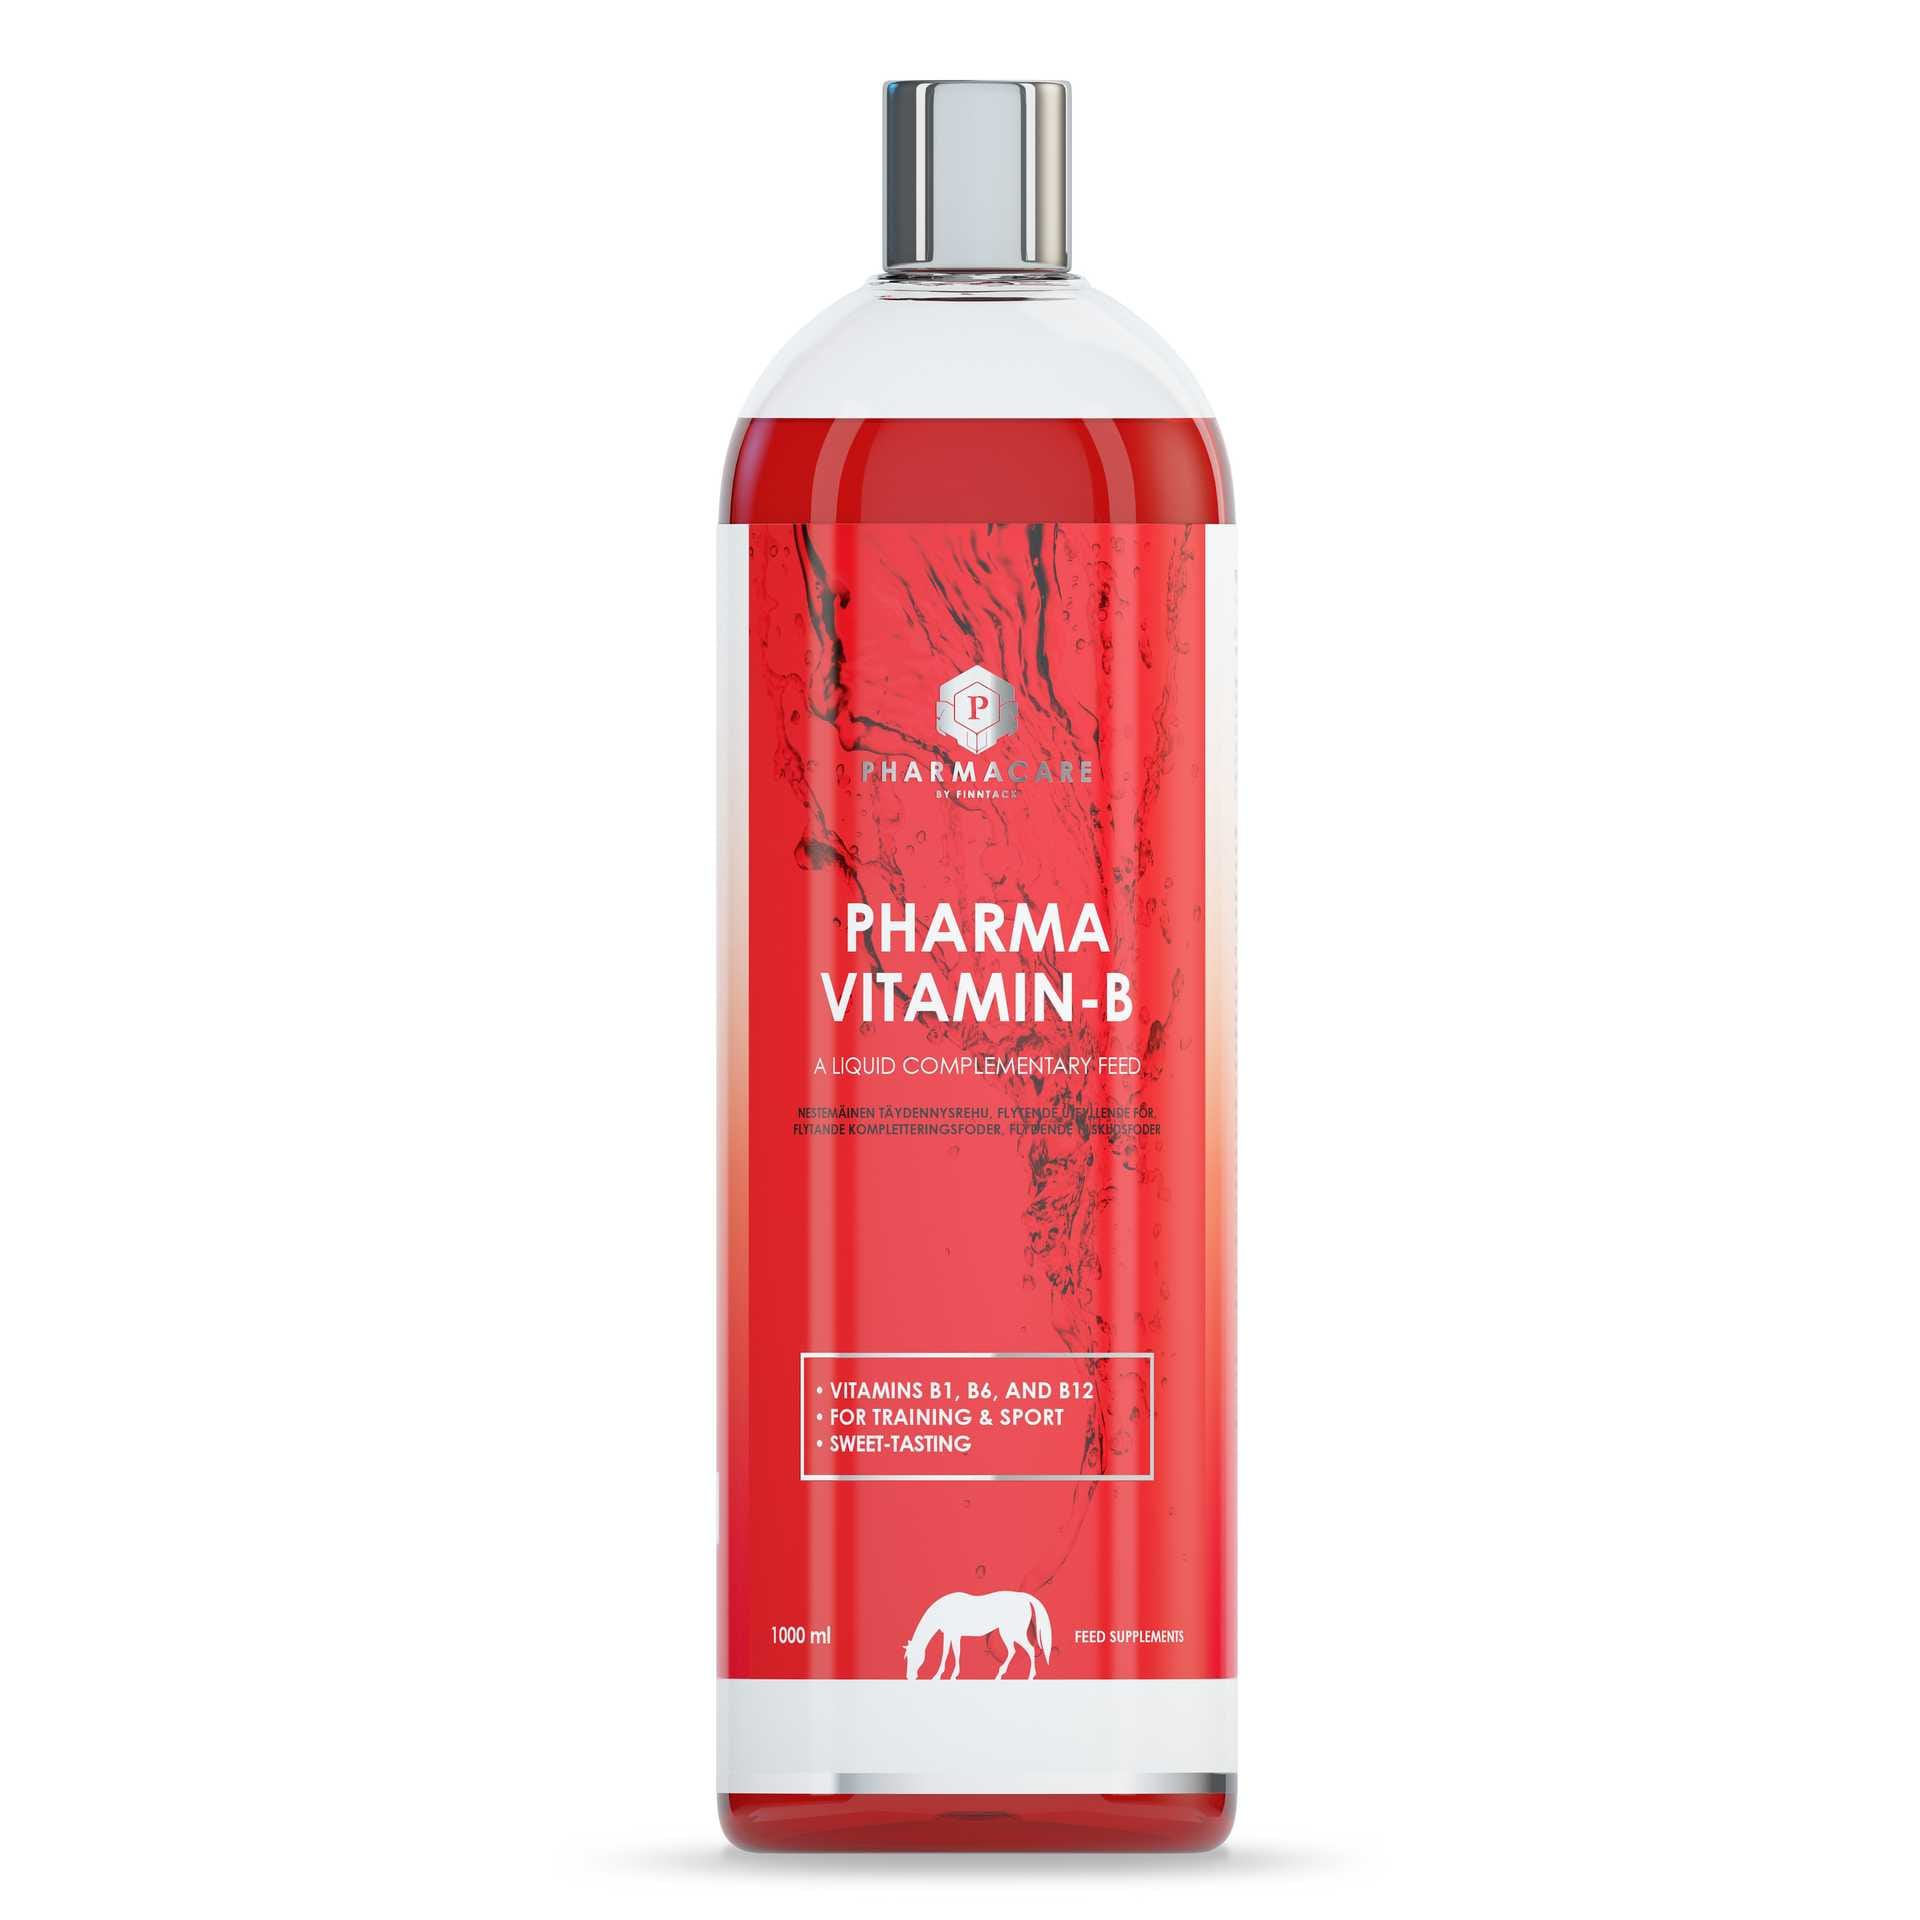 Pharma Vitamin B, 1000 ml